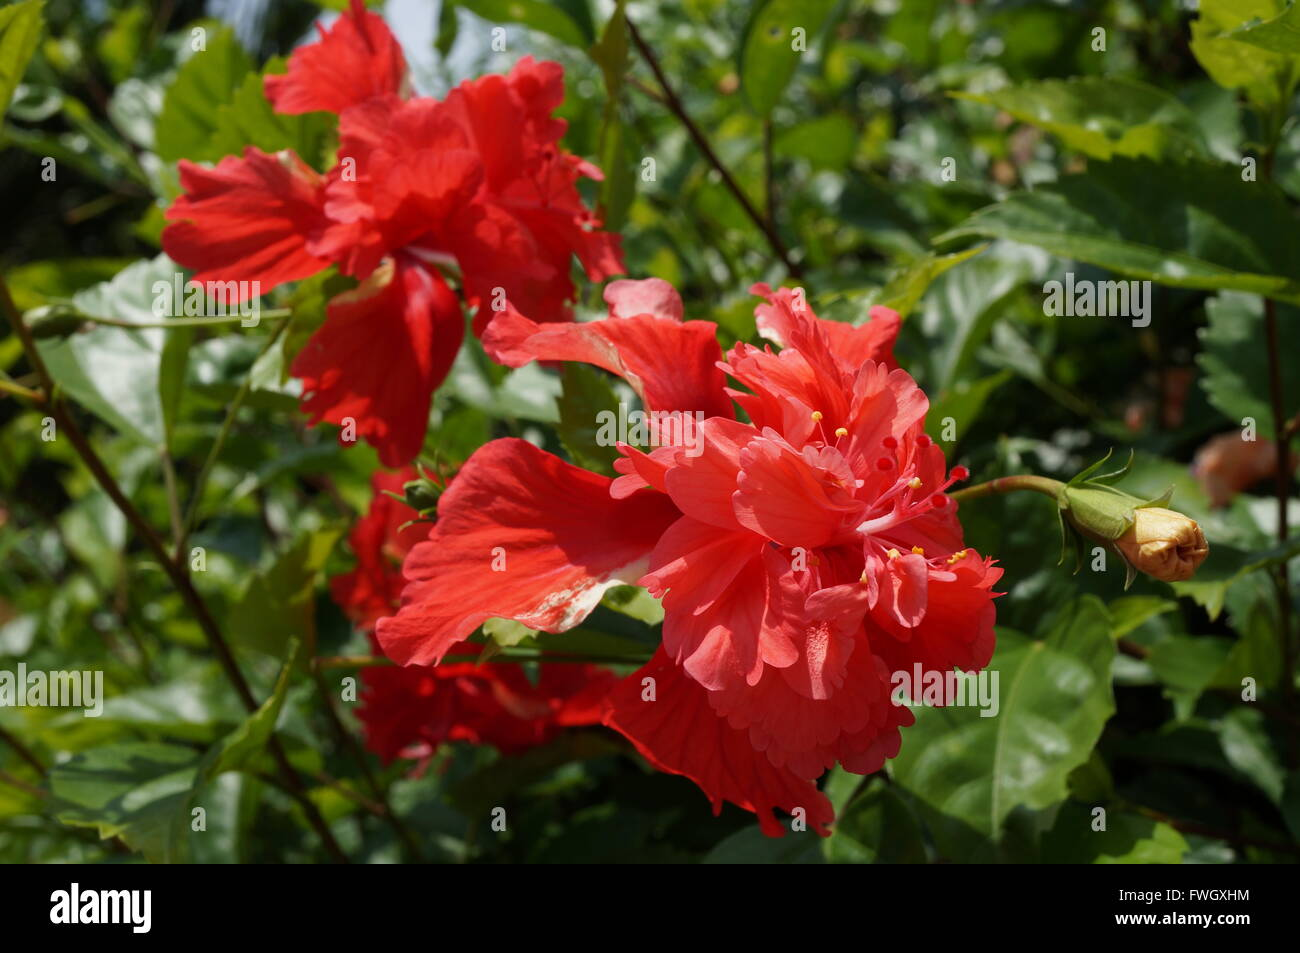 Double Bloom Red Hibiscus Flower Stock Photo 101790352 Alamy